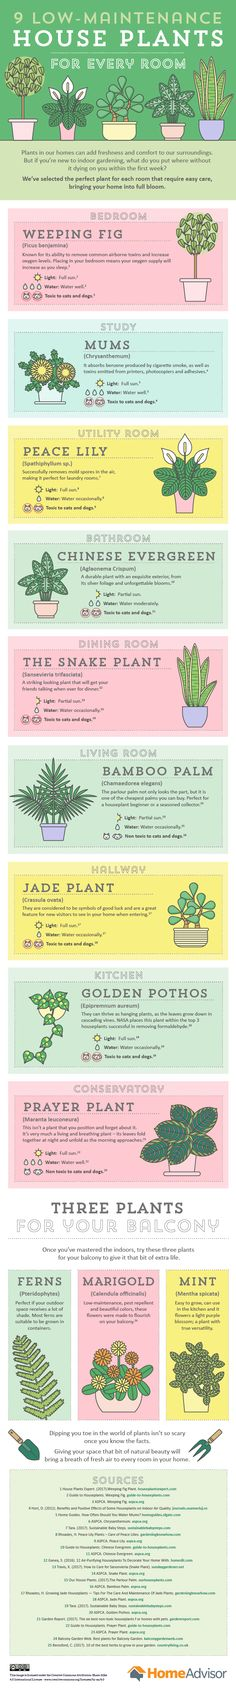 Best Plant To Buy For Every Room In Your Home Find the best low-maintenance plant for every room of the home with this handy guide.Find the best low-maintenance plant for every room of the home with this handy guide. Hydroponic Gardening, Hydroponics, Gardening Tips, Indoor Gardening, Jade Plants, Low Maintenance Plants, Bedroom Plants, Cool Plants, Plant Care